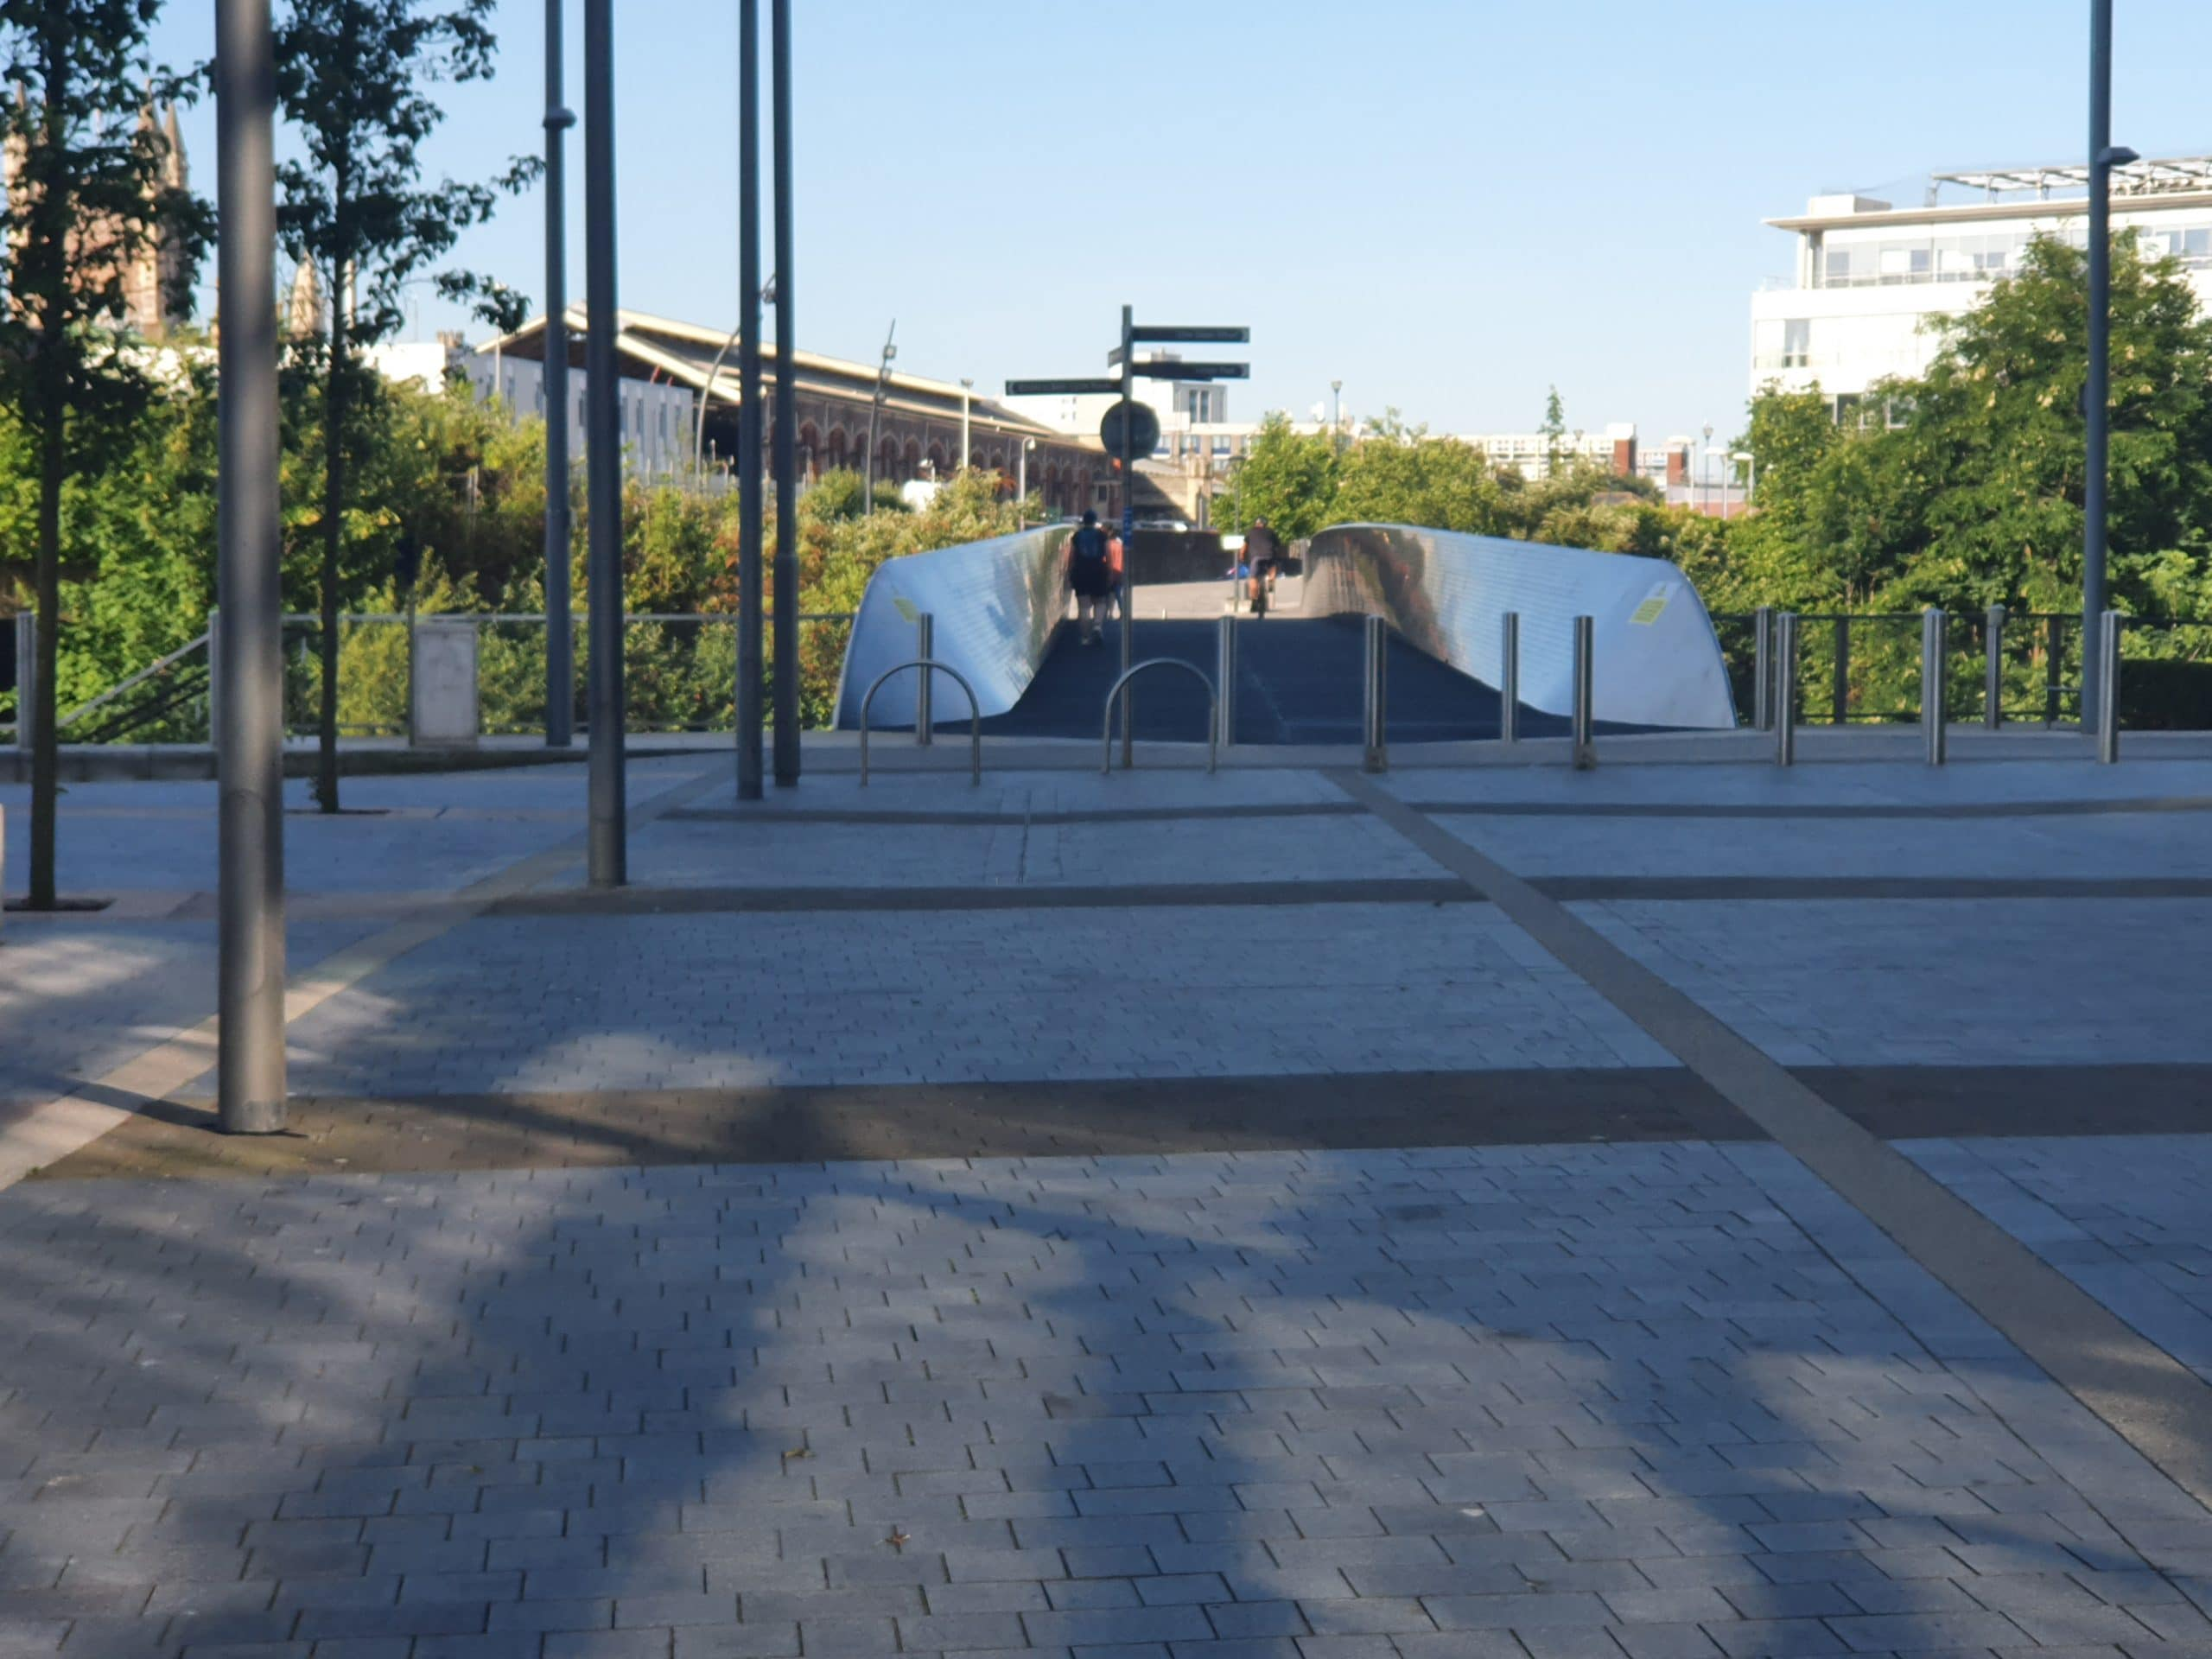 Photo of shared path metal bridge with people walking and cycling over it. There are some bollards at the entrance, and cycle parking. Some pedestrian traffic signs at the entrance are pointing in different directions. There are big green trees on the ground under the bridge and we can see Bristol Temple Meads station in the background.